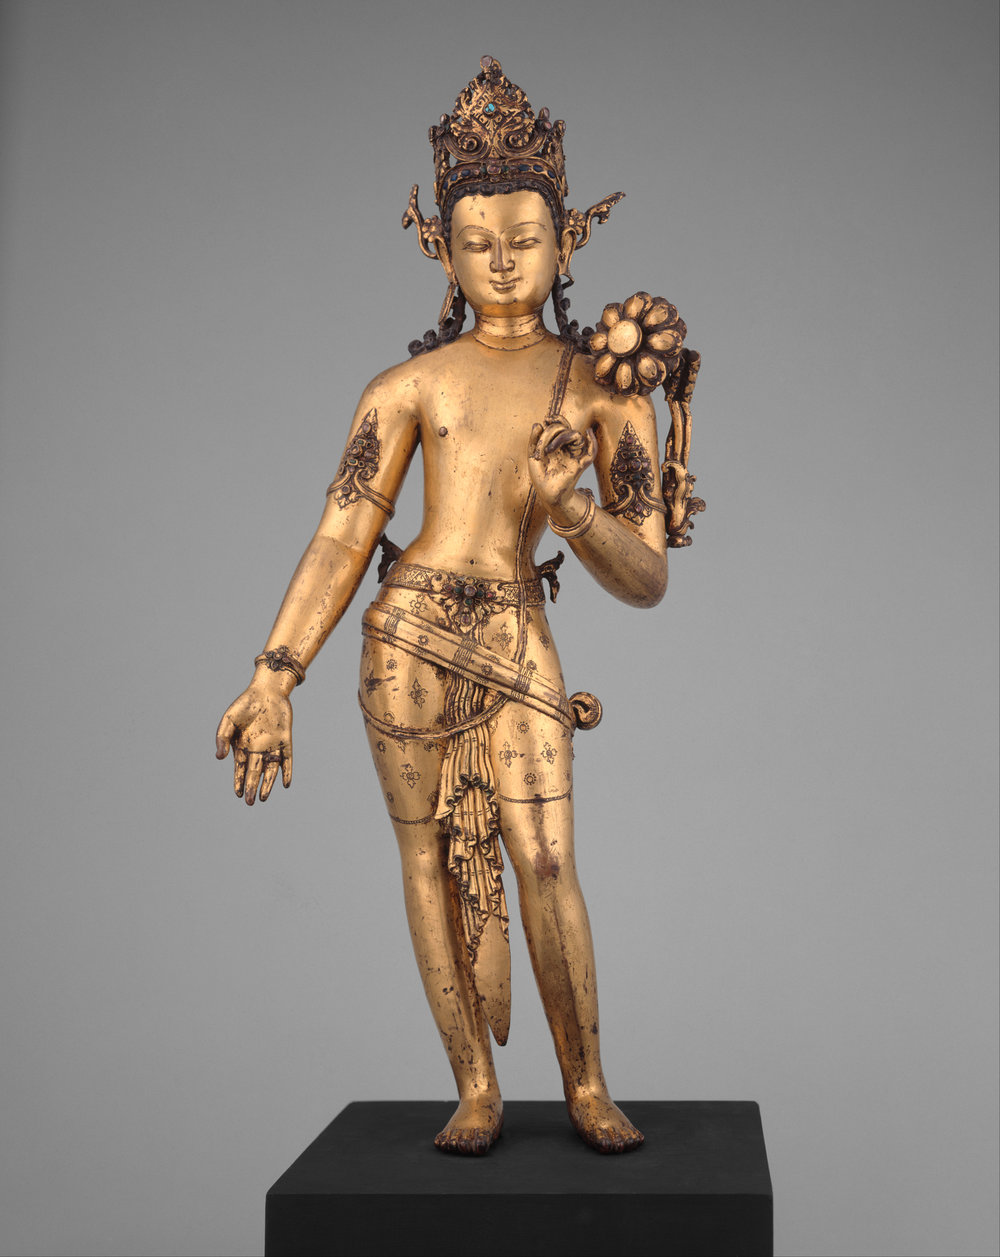 The Bodhisattva Padmapani Lokesvara. 11th century. Kathmandu Valley, Nepal. Image Courtesy of The Met.